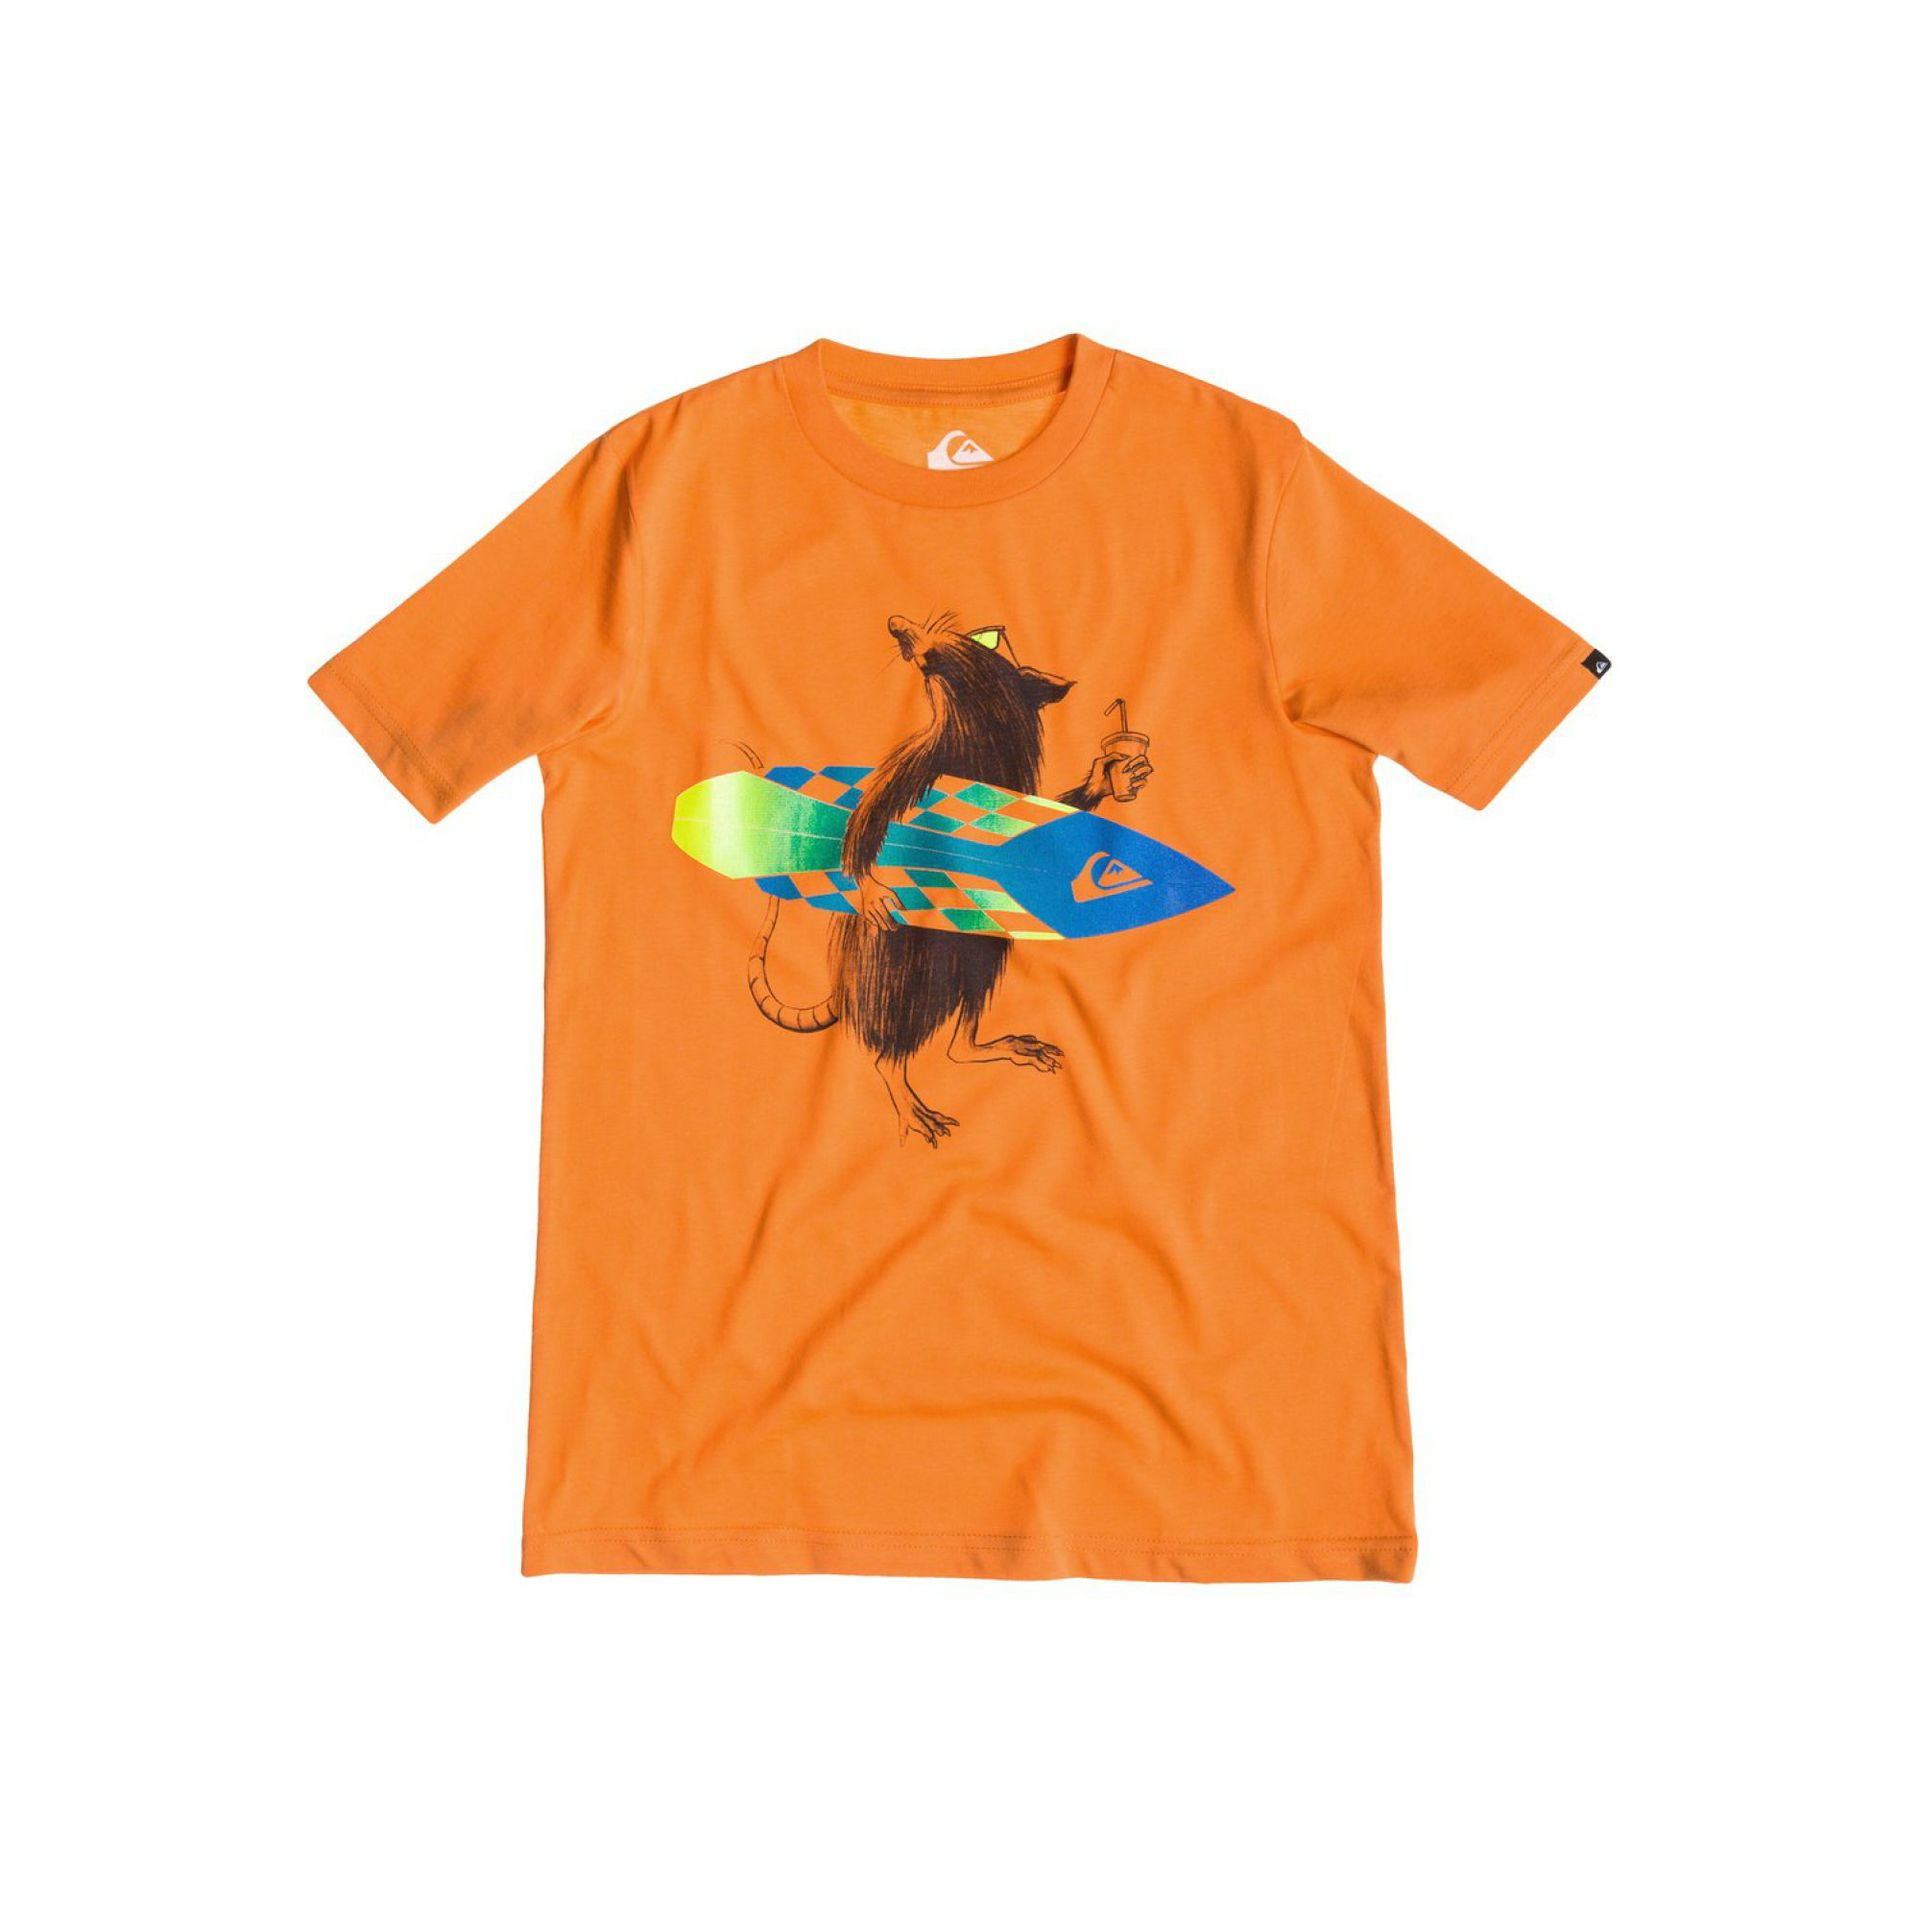 T-SHIRT QUIKSILVER CLASSIC TEE YOUTH NORSE TANGERINE